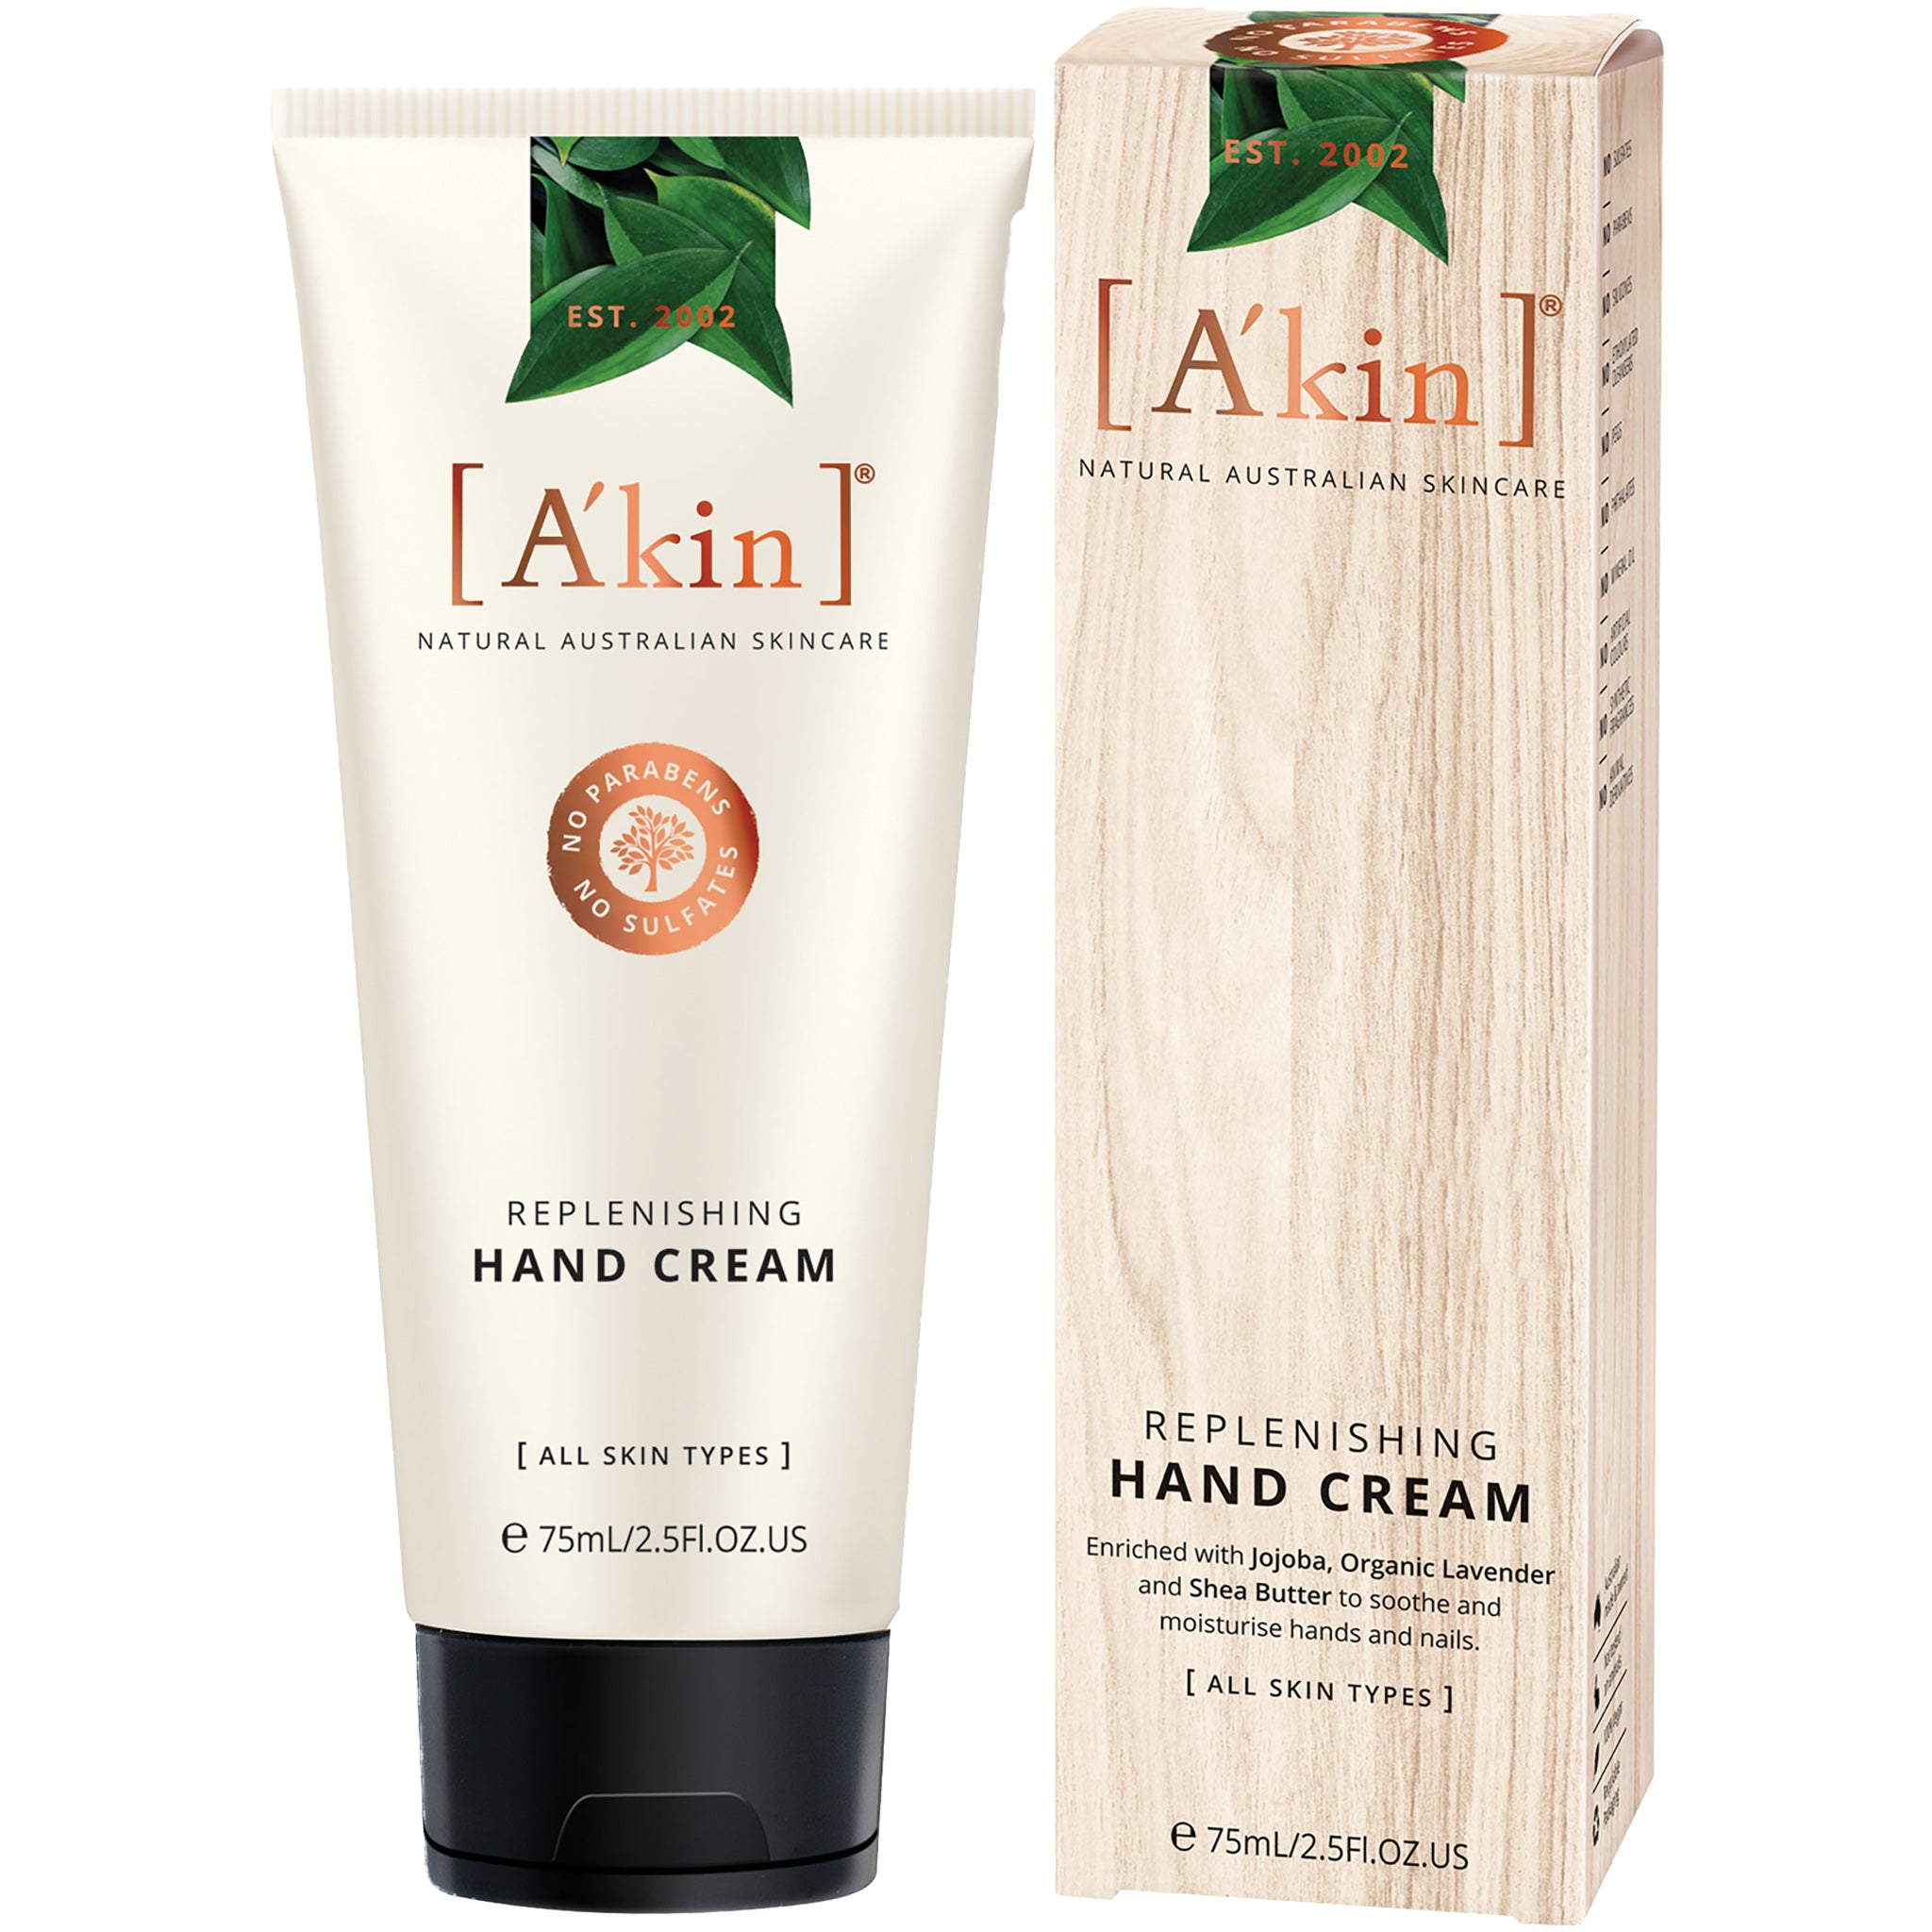 Replenishing Hand Cream with Jojoba, Organic Lavender and Shea Butter